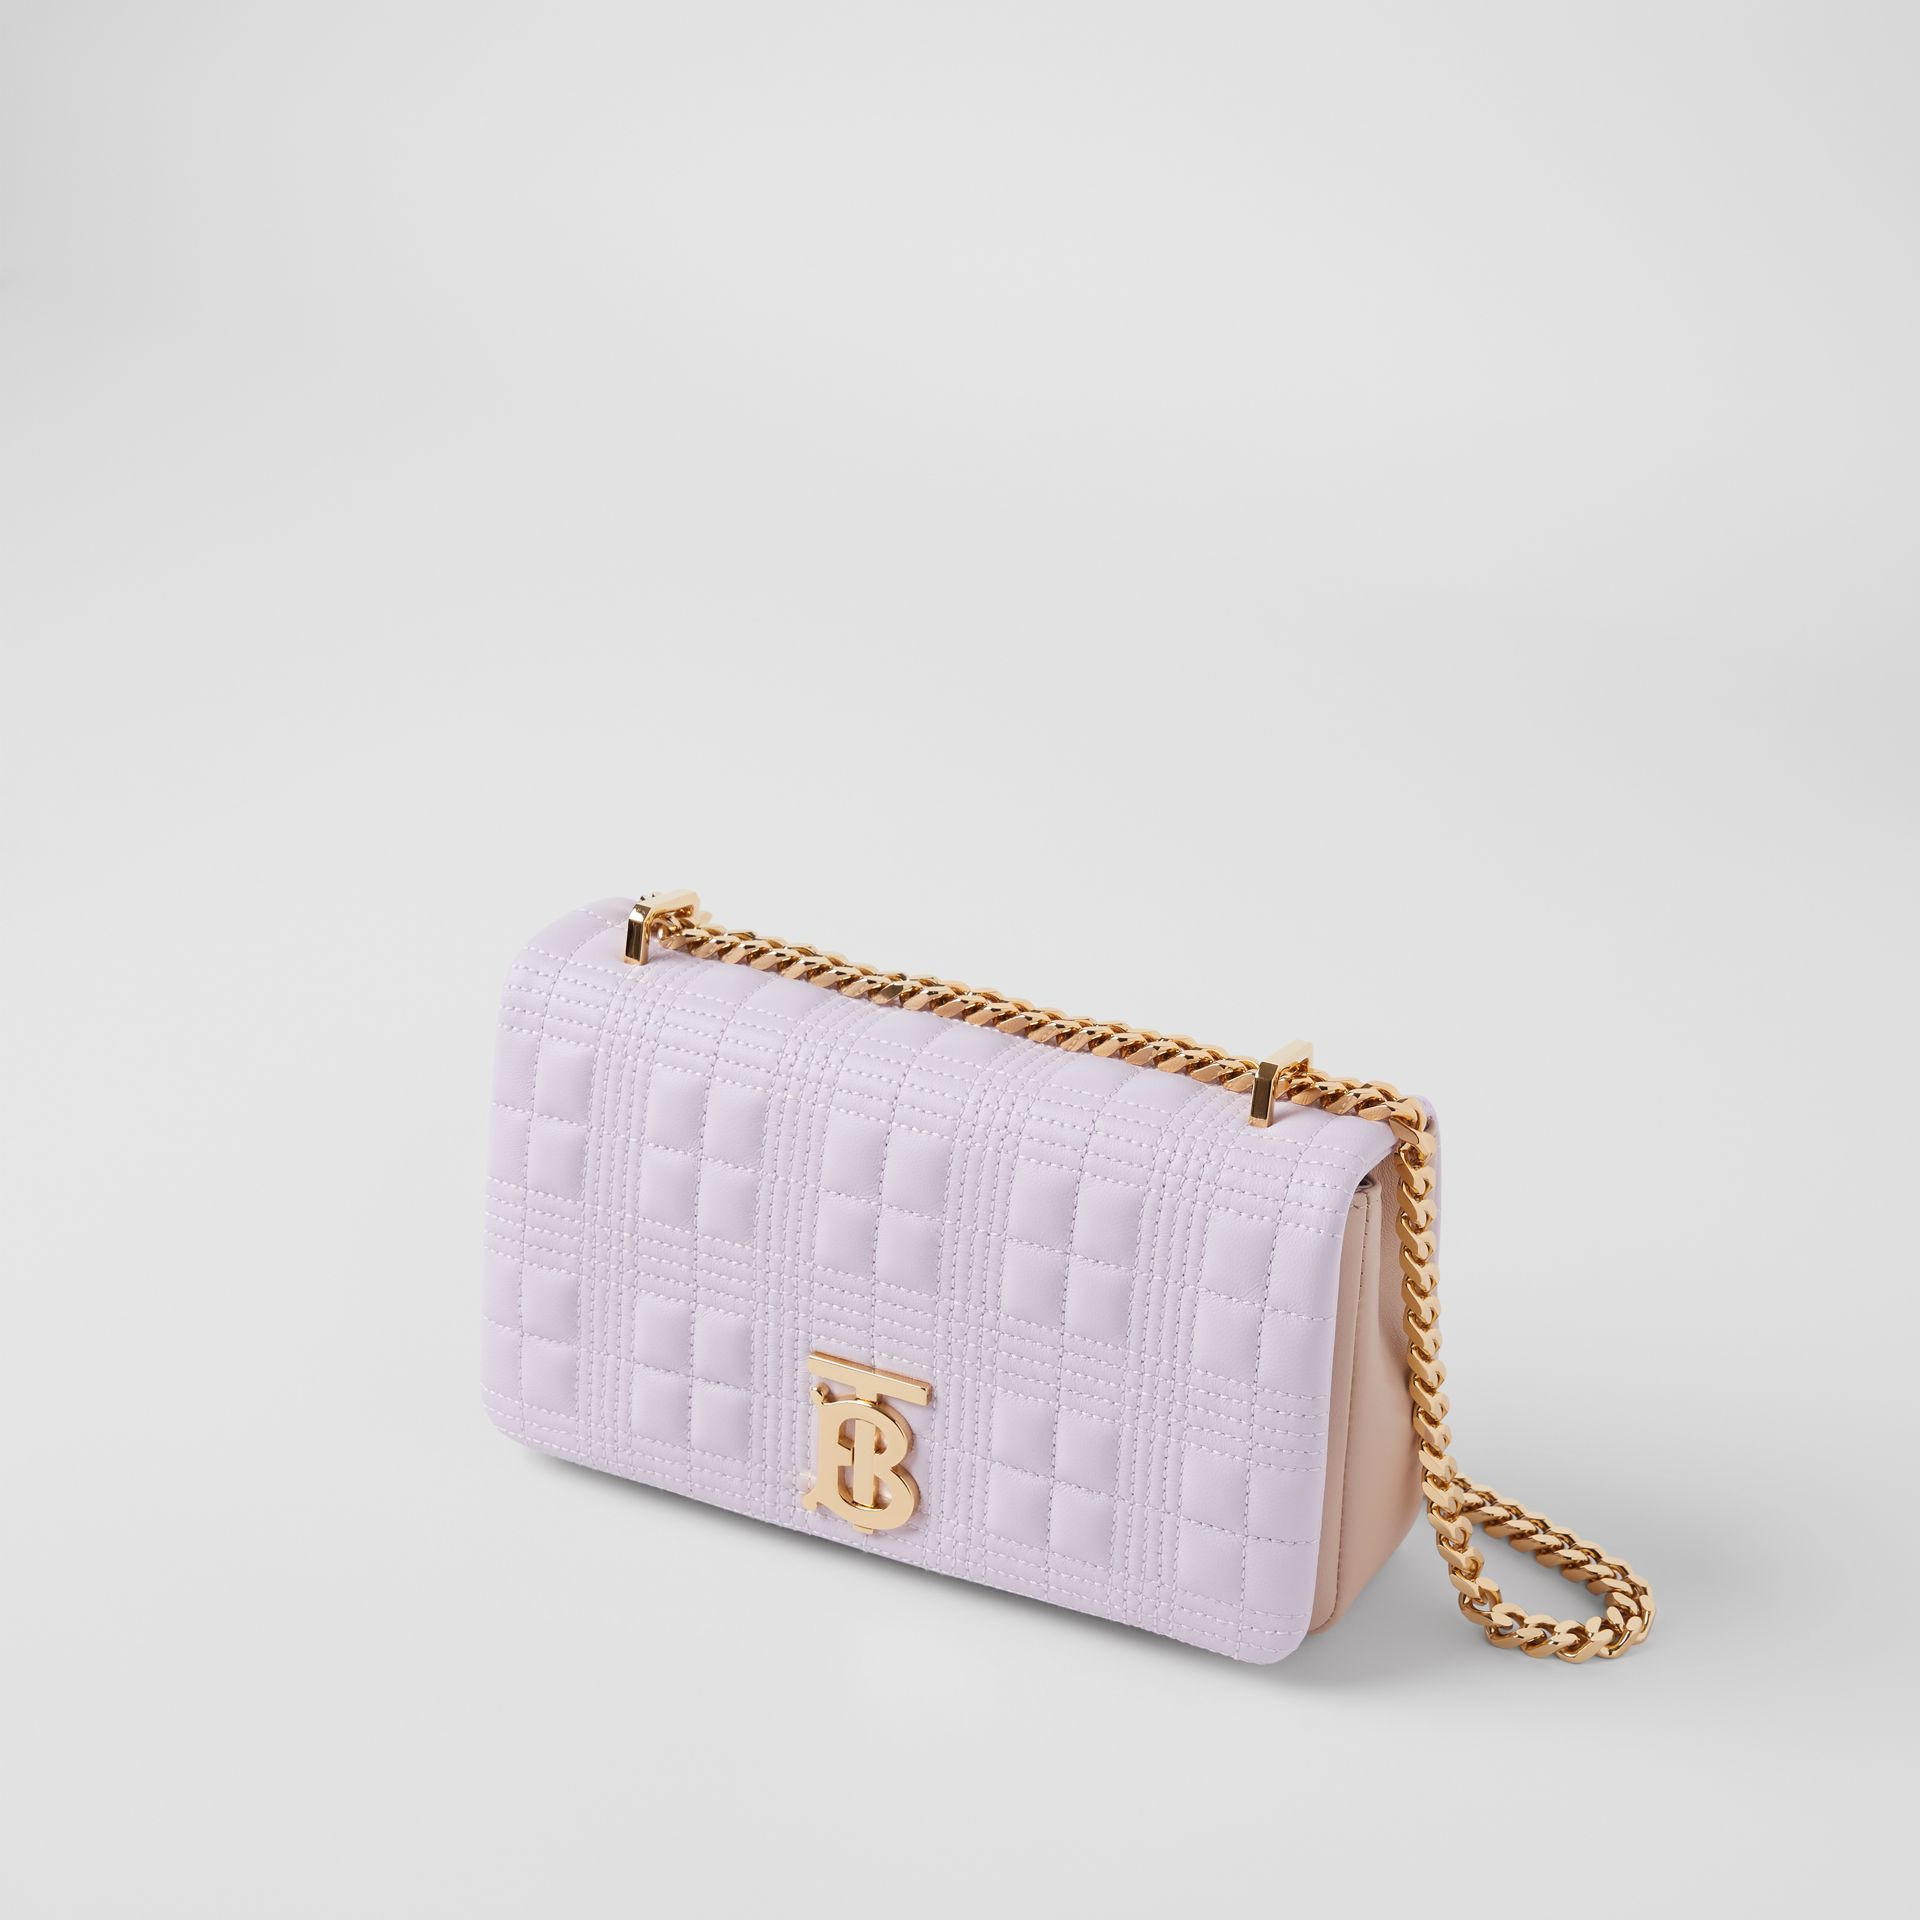 Small Quilted Two-tone Lambskin Lola Bag in Pale Thistle/soft Fawn - Women | Burberry - gallery image 3